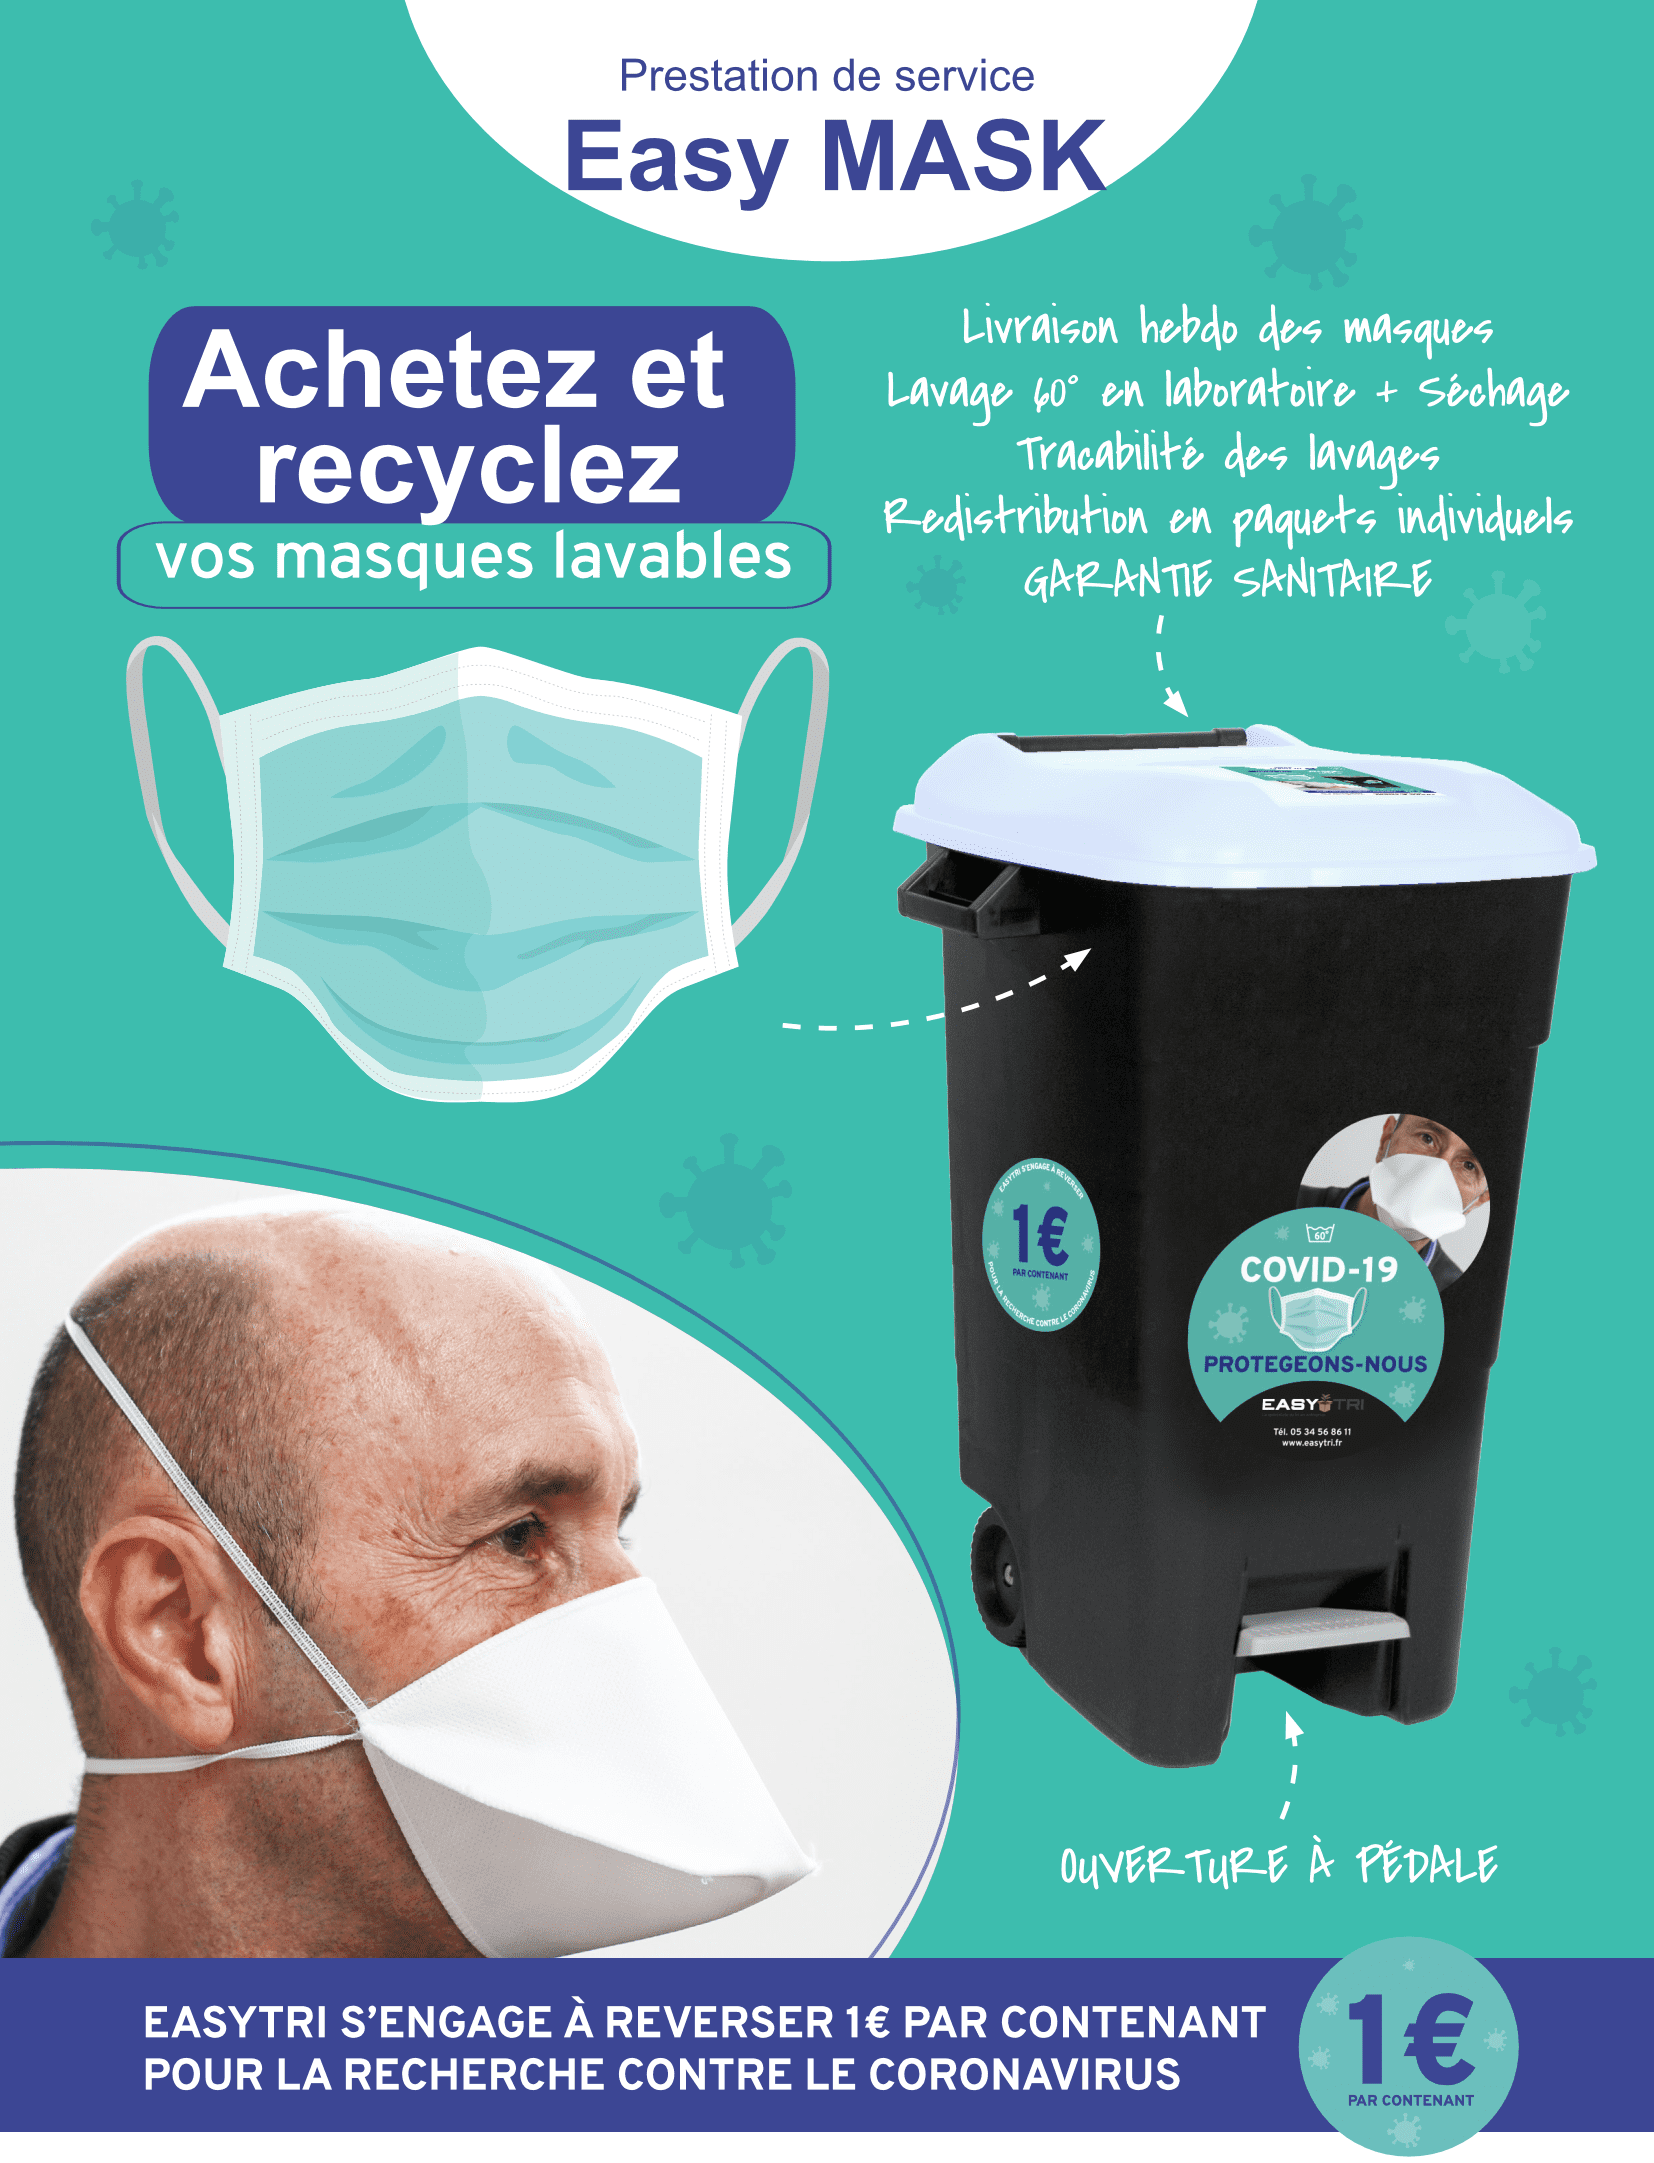 protocole-sanitaire-covid_gestion-masques-lavables_EASY-MASK_Toulouse